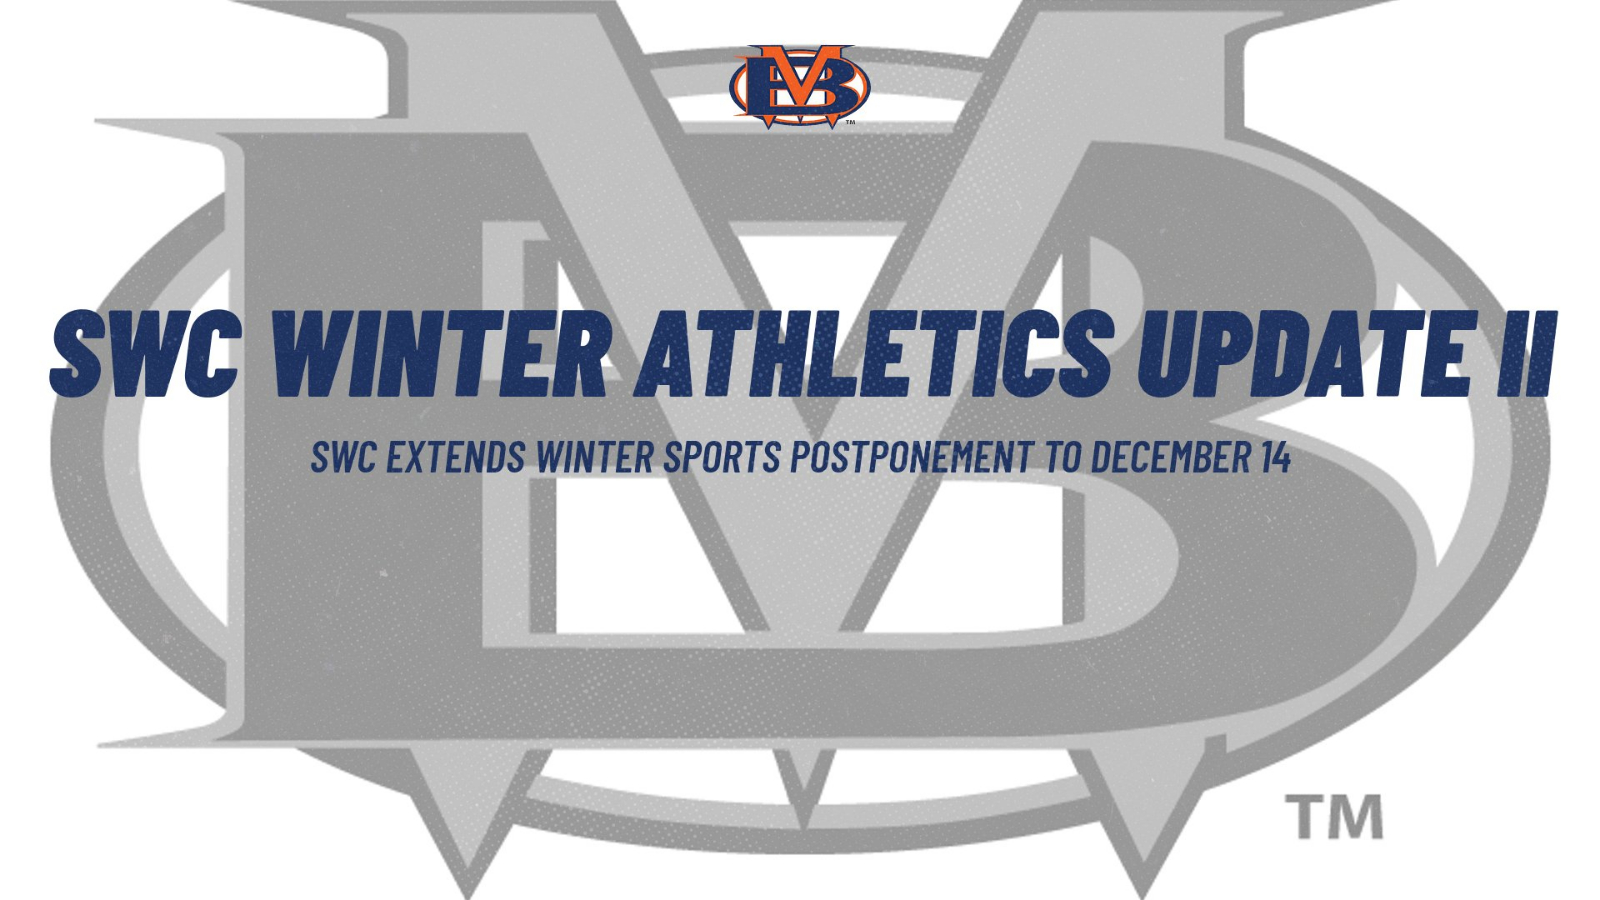 SWC Extends Winter Sports Postponement to December 14th